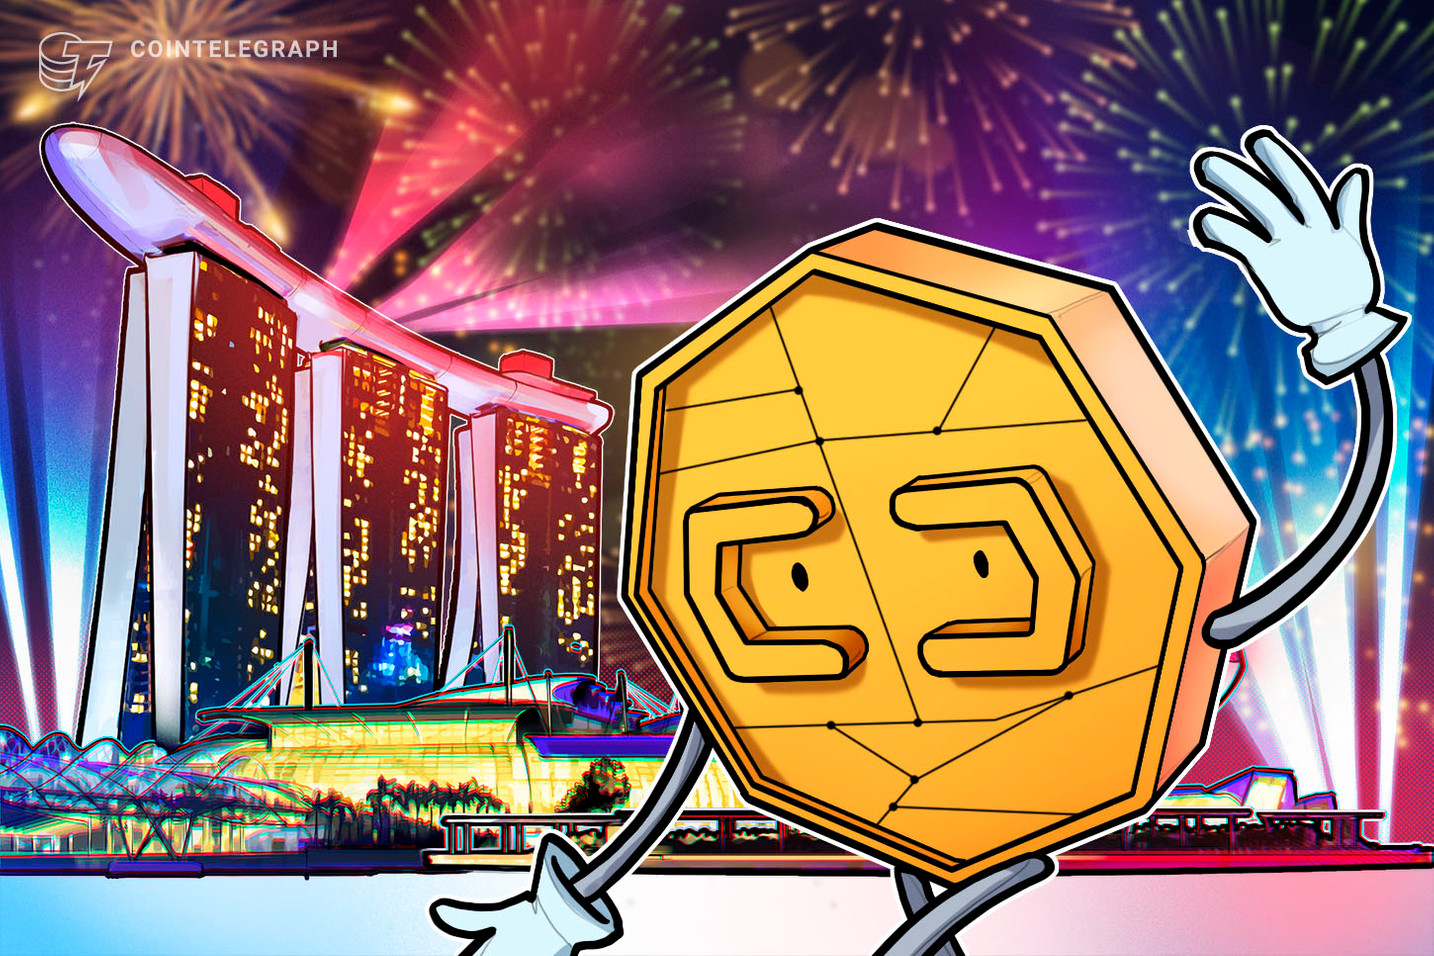 Singapore's largest bank DBS sets up crypto exchange platform